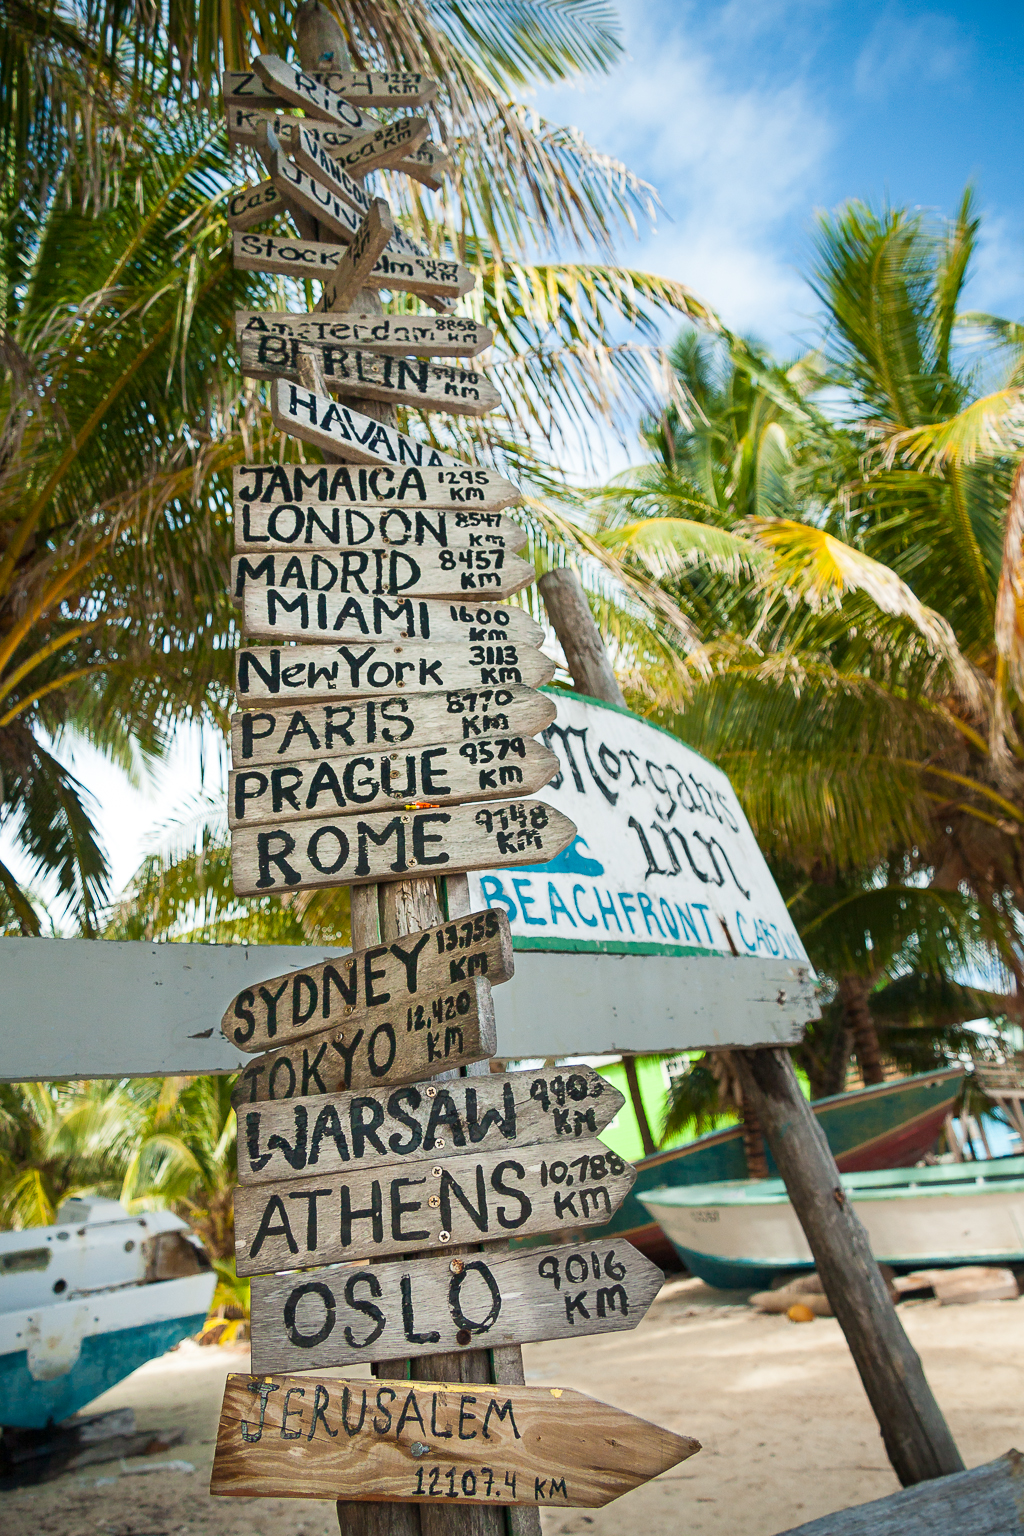 Directions to everywhere from Caye Caulker, Belize